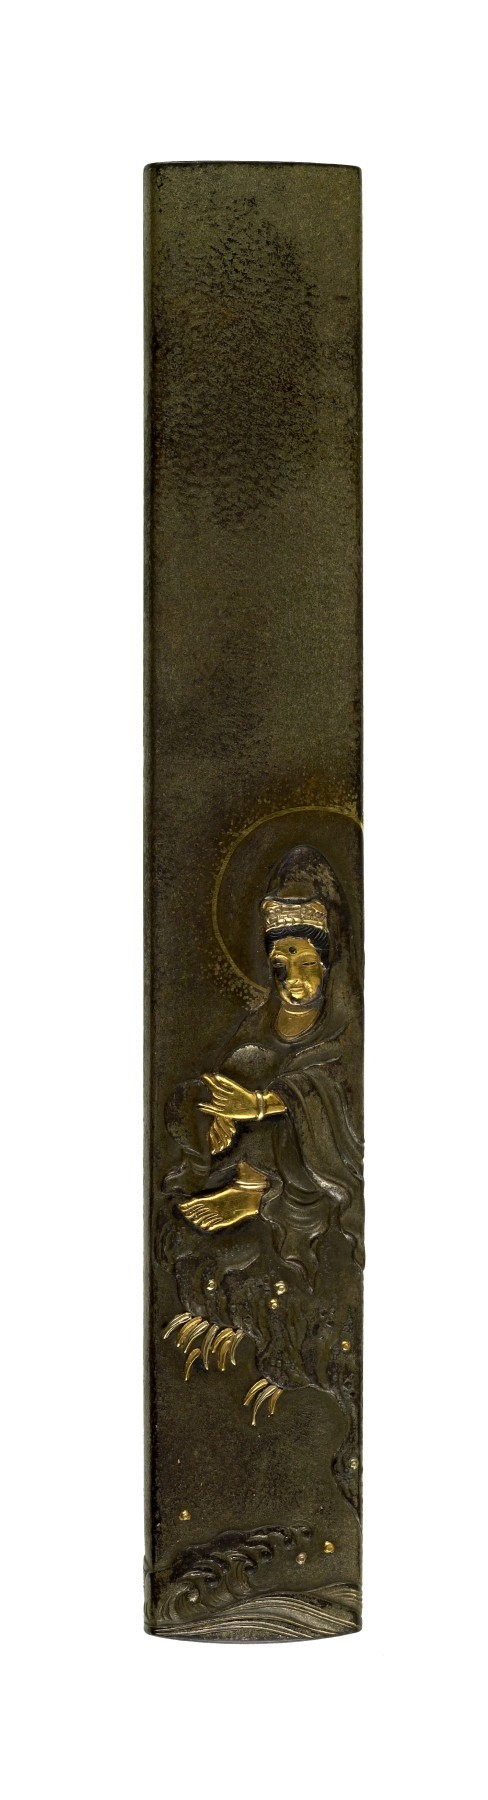 Kozuka with Kannon Sitting on a Rock